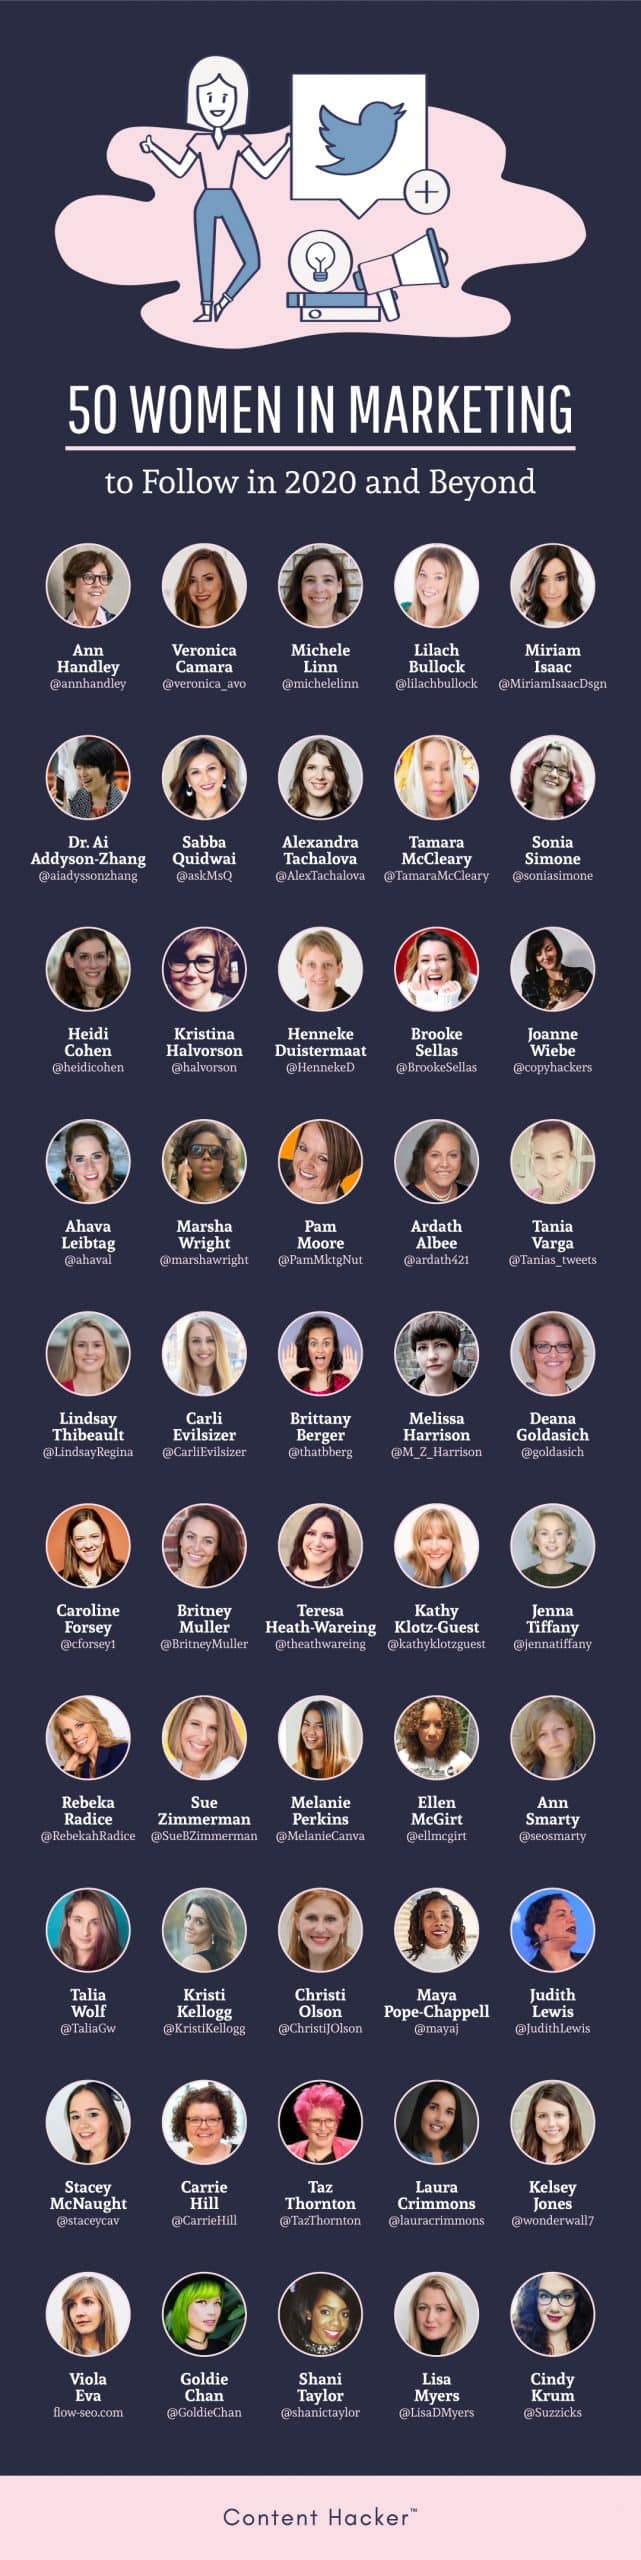 50 women in marketing to follow in 2020 and beyond